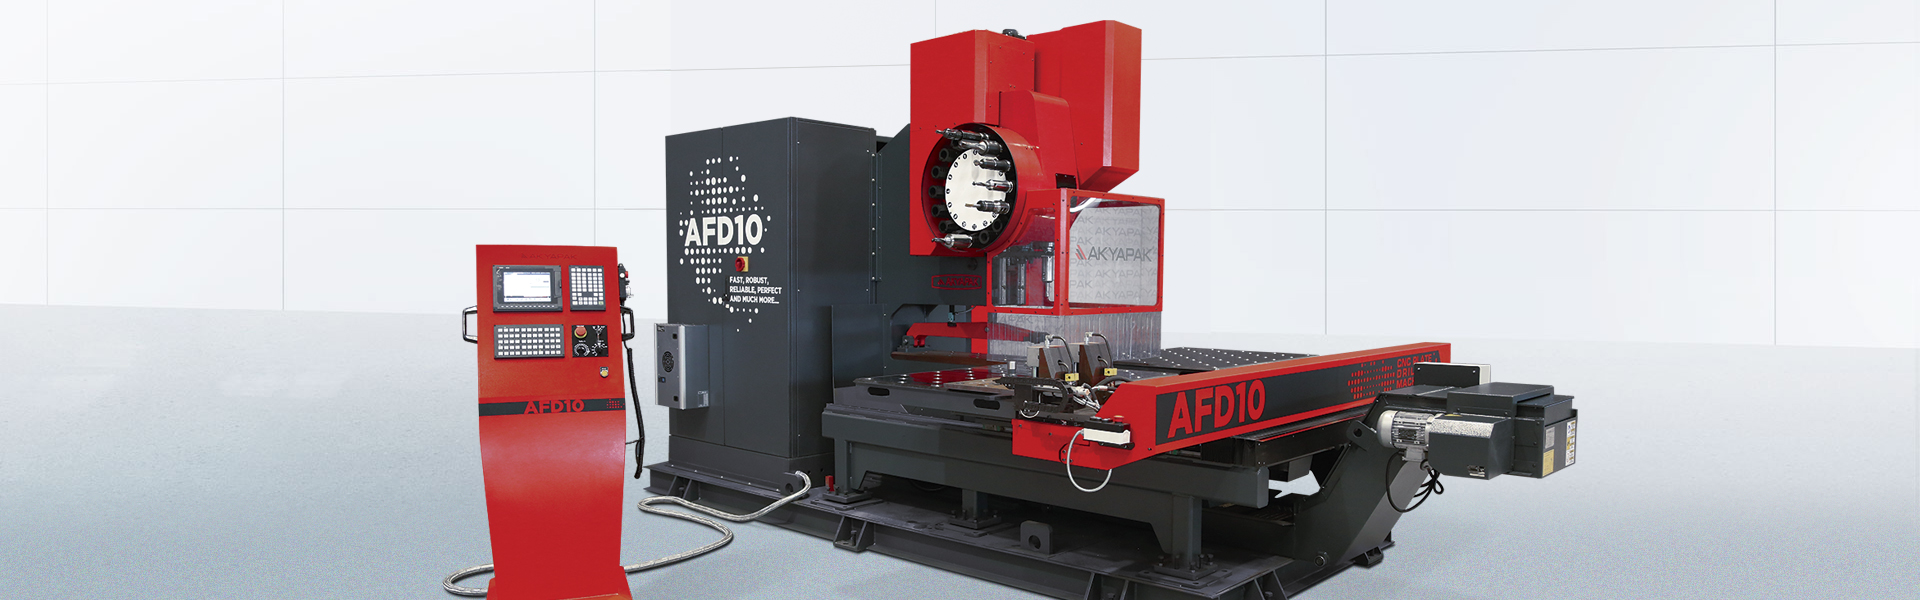 AFD 10 Plate Drilling Machines